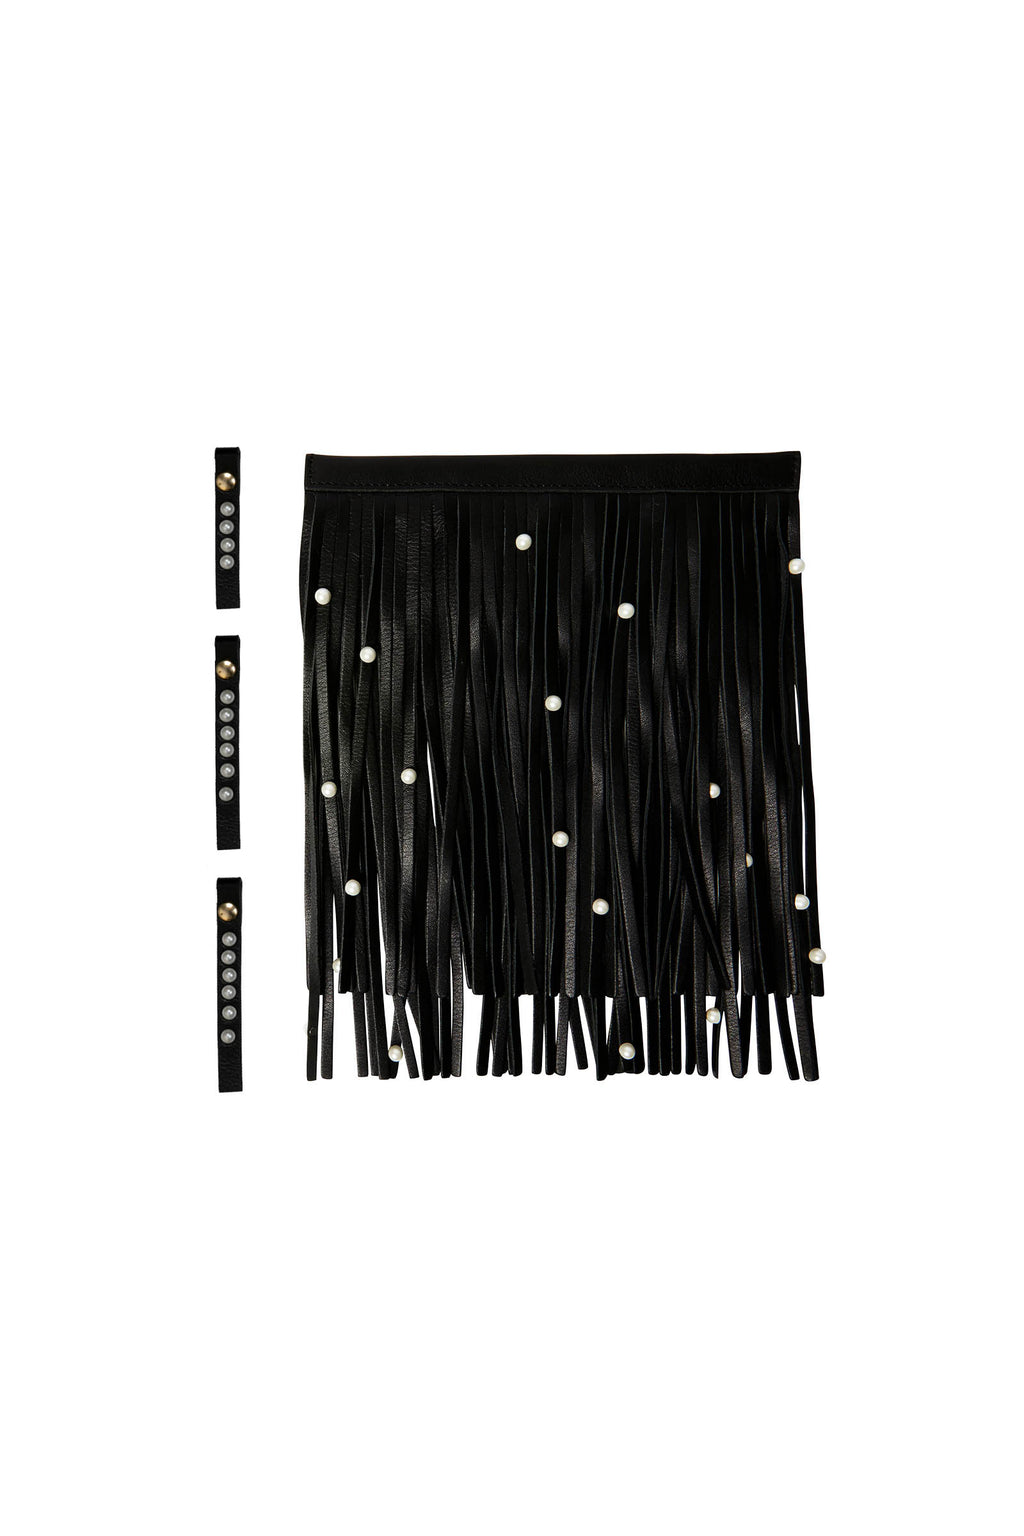 Pearl Leather Tassels and Zip Puller Set for Tassel Bags